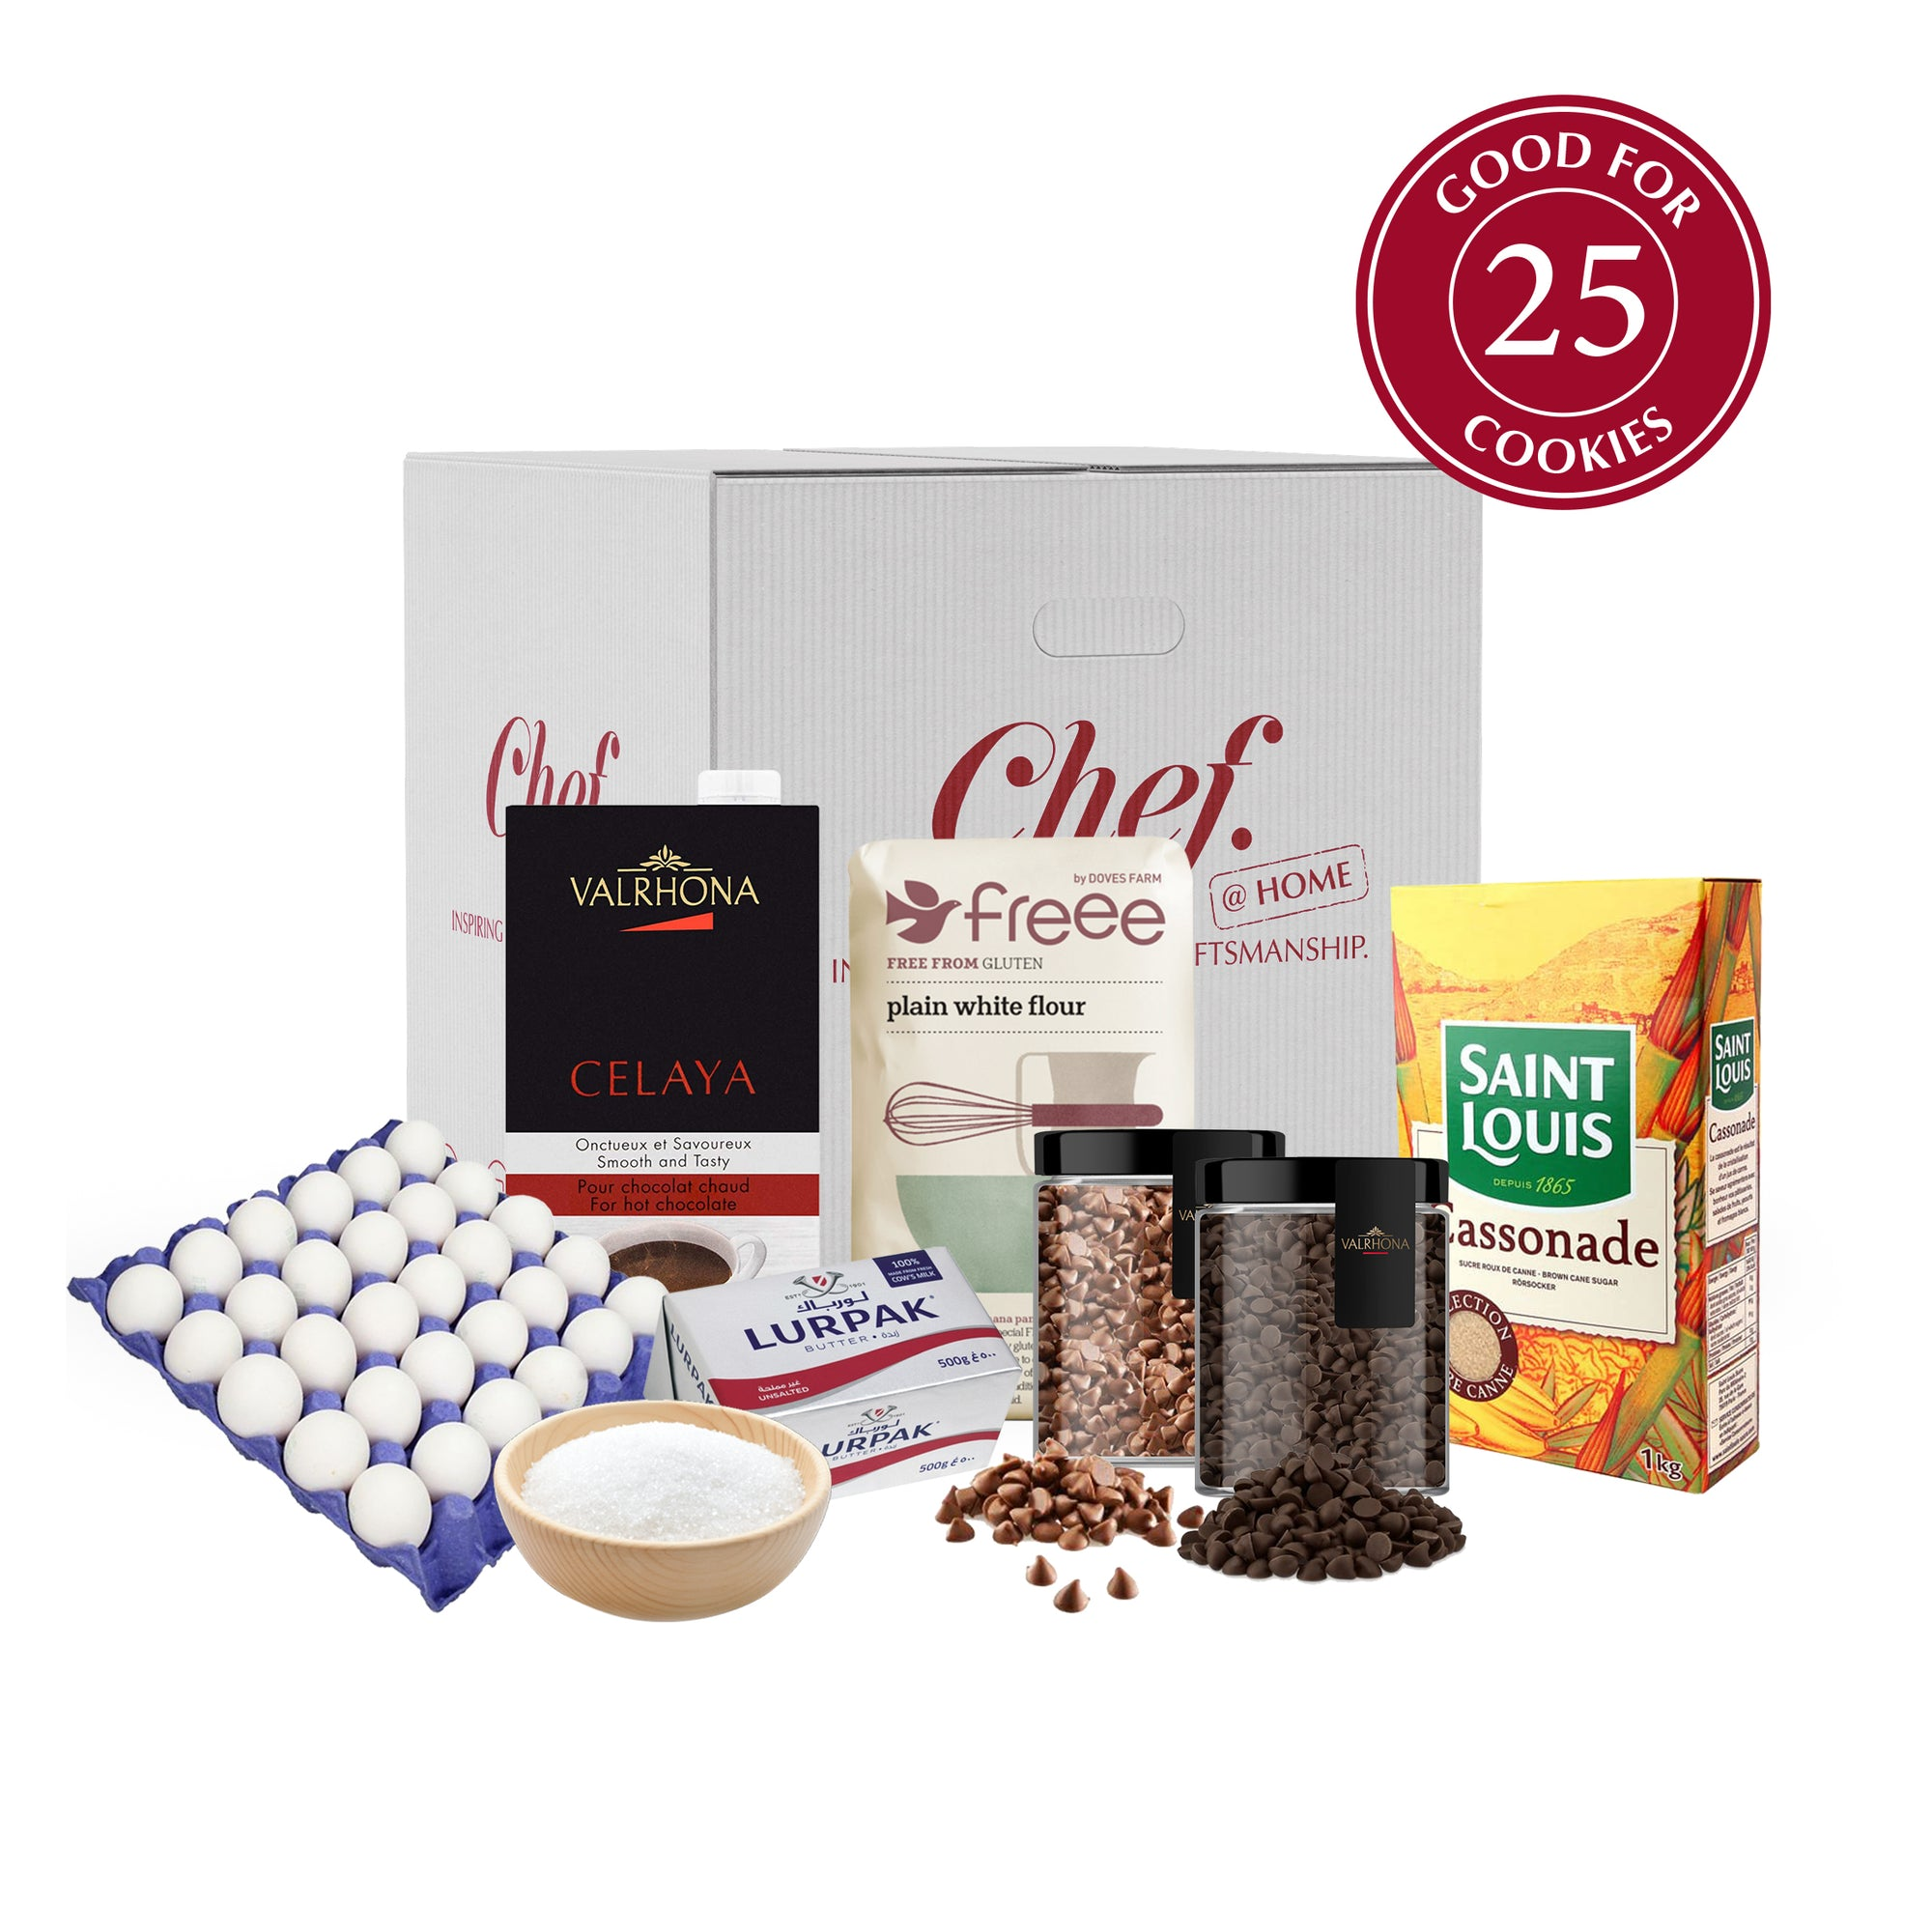 Gluten Free Cookies and Hot Chocolate Kit